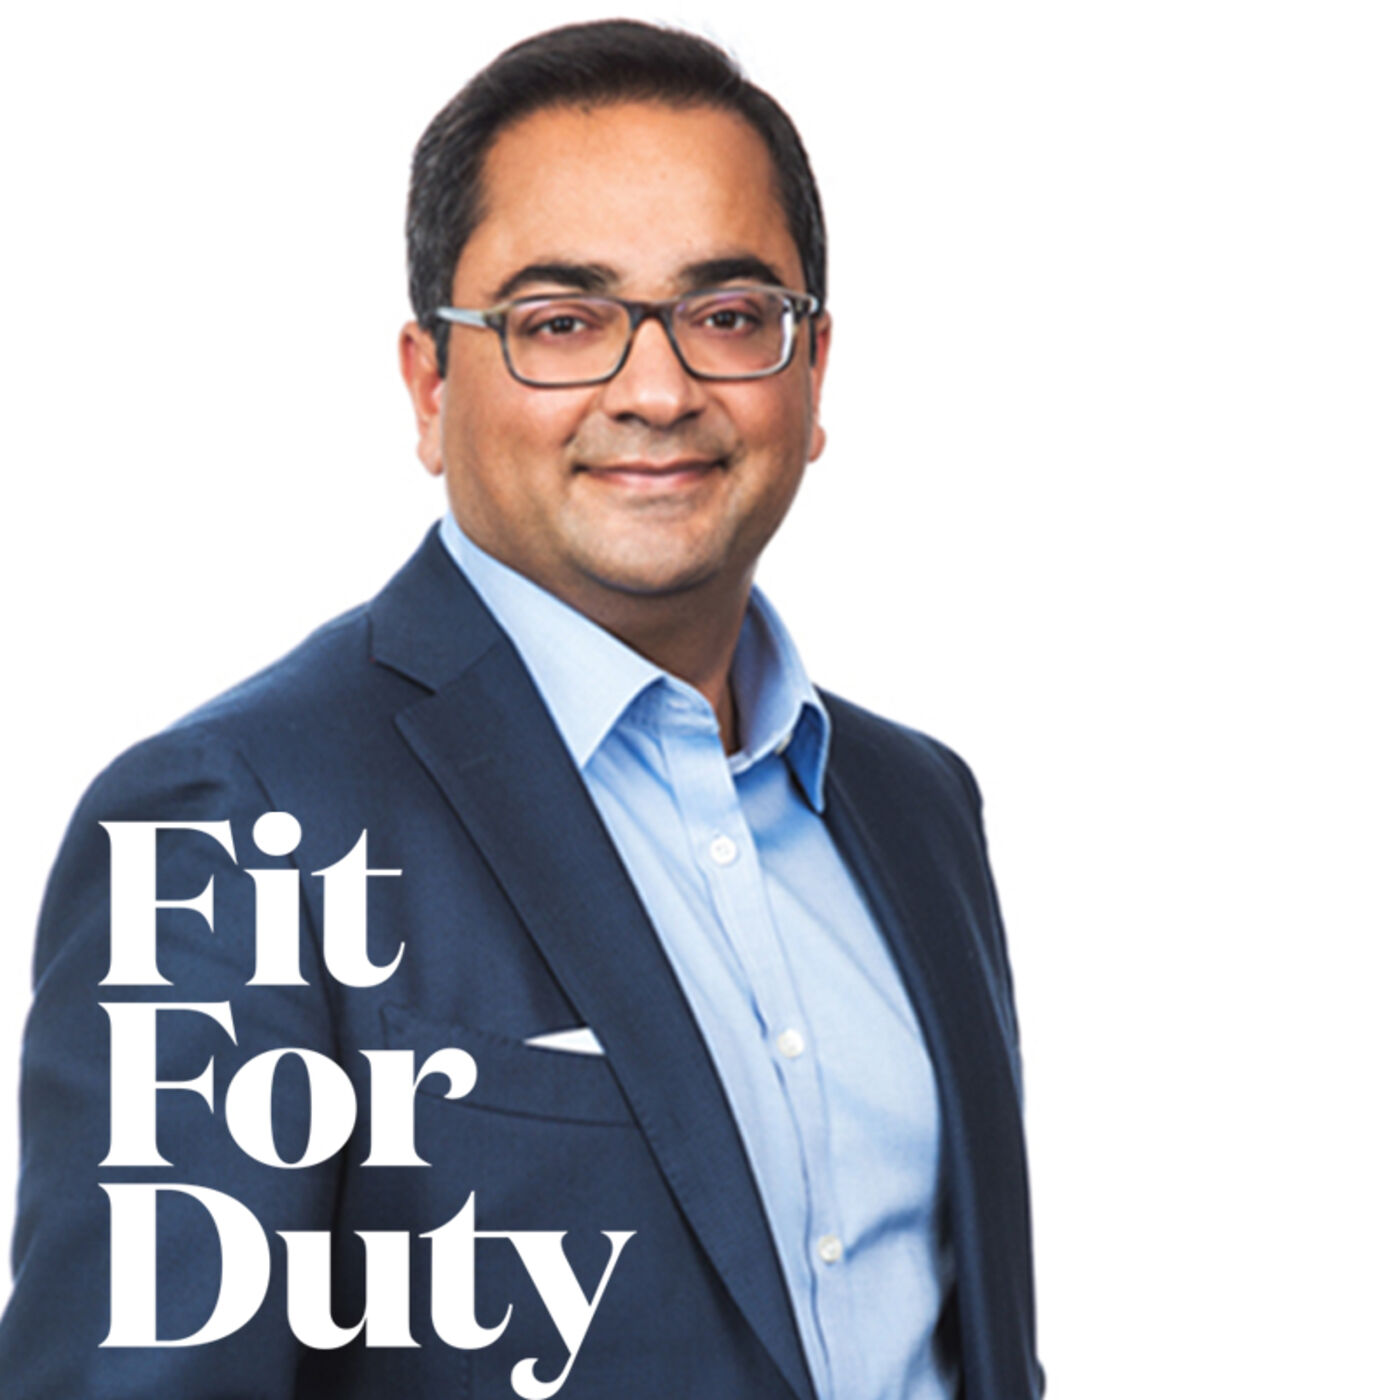 Fit For Duty episode 4: World No Tobacco Day